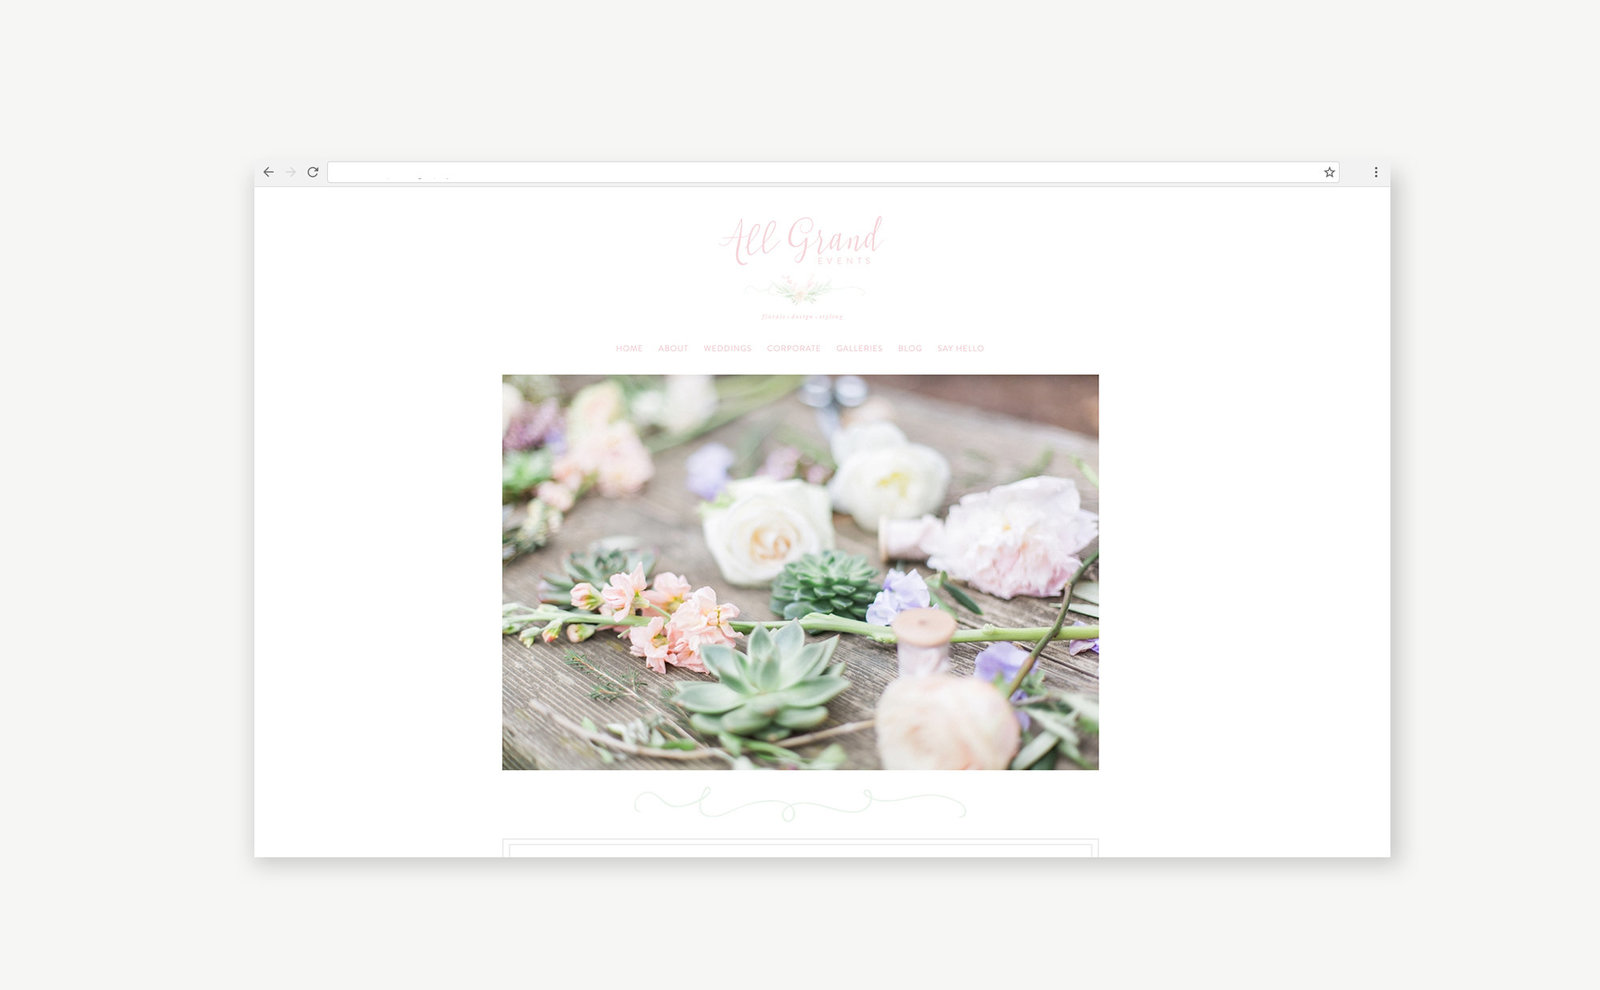 branding-for-florists-web-design-all-grand-events-01